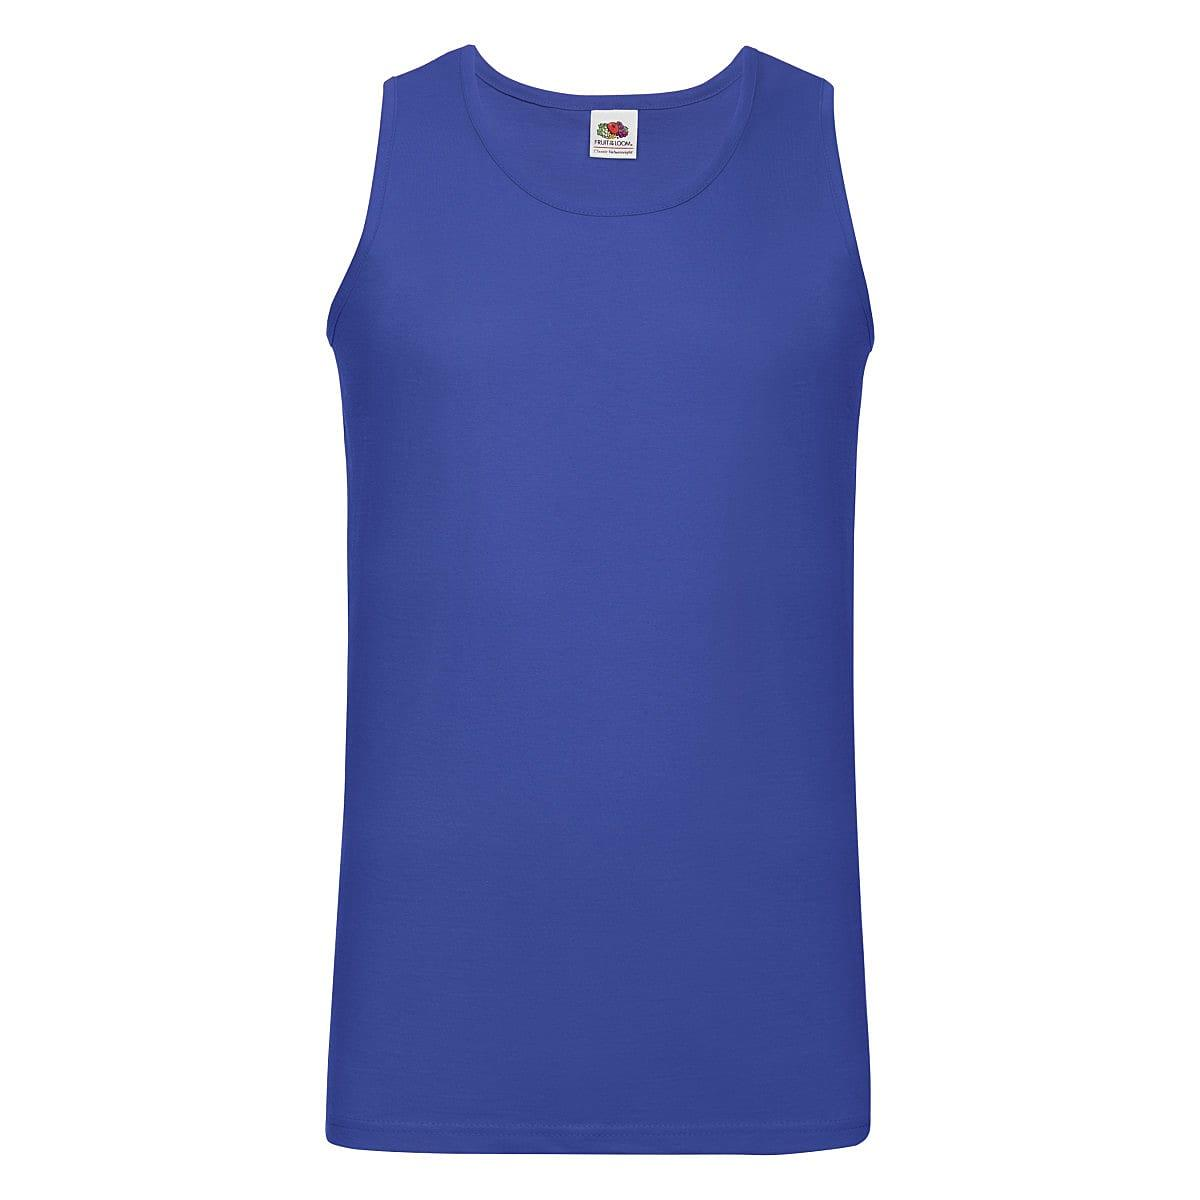 Fruit Of The Loom Athletic Vest in Royal Blue (Product Code: 61098)